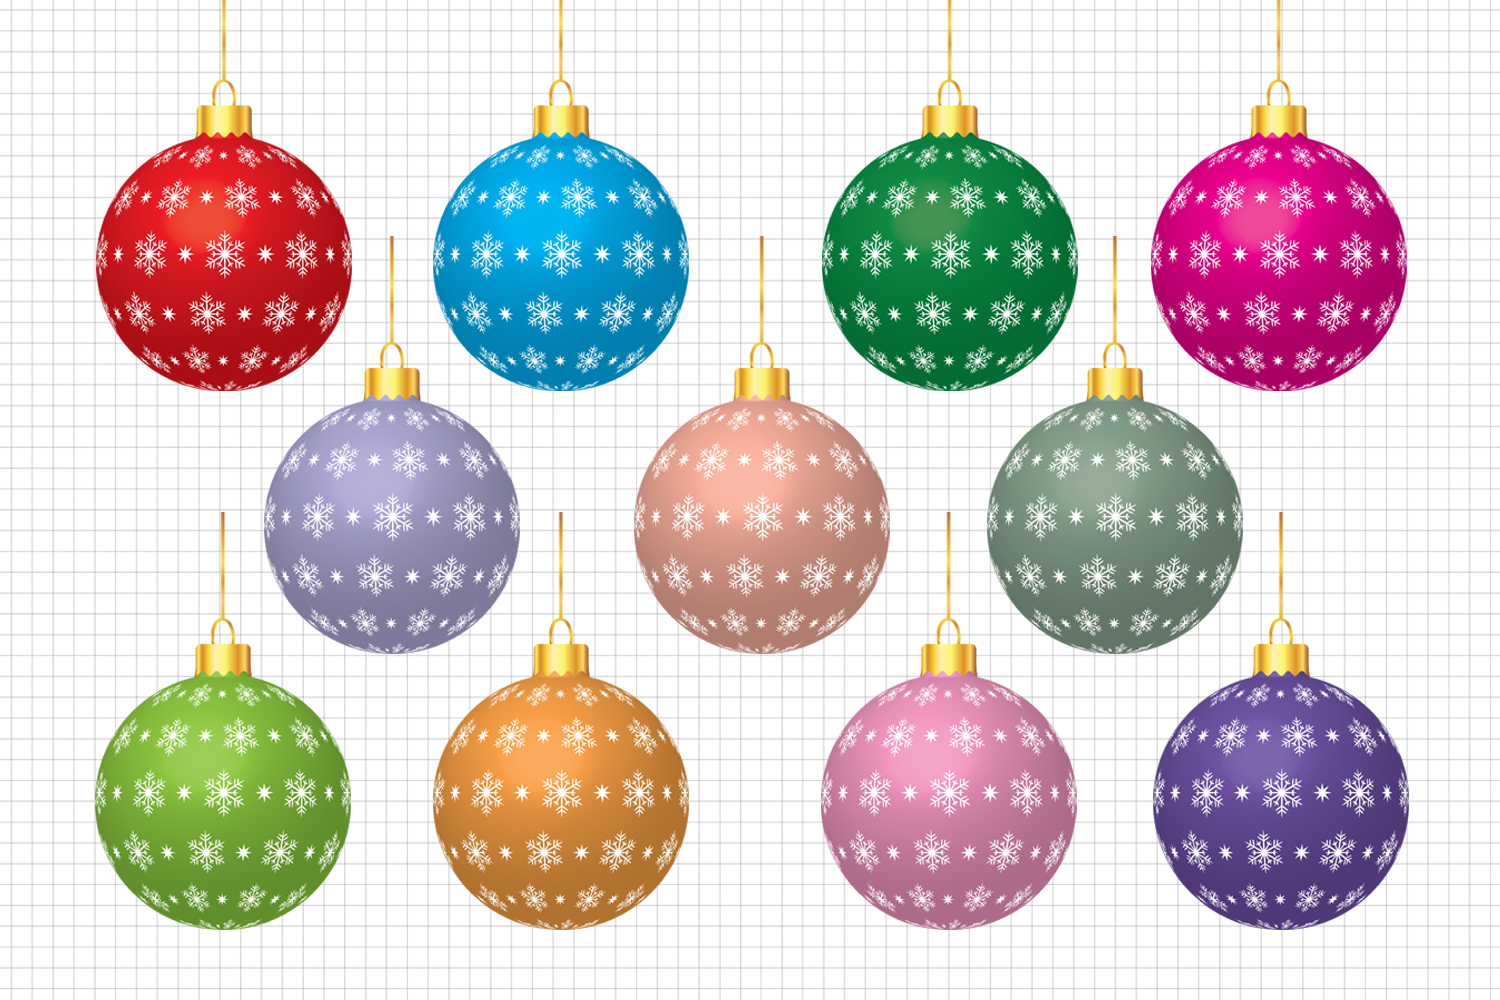 Christmas Balls Clipart, Christmas Graphic and Illustrations, Christmas Clipart / Scrapbooking, Card Making, Decorations example image 1